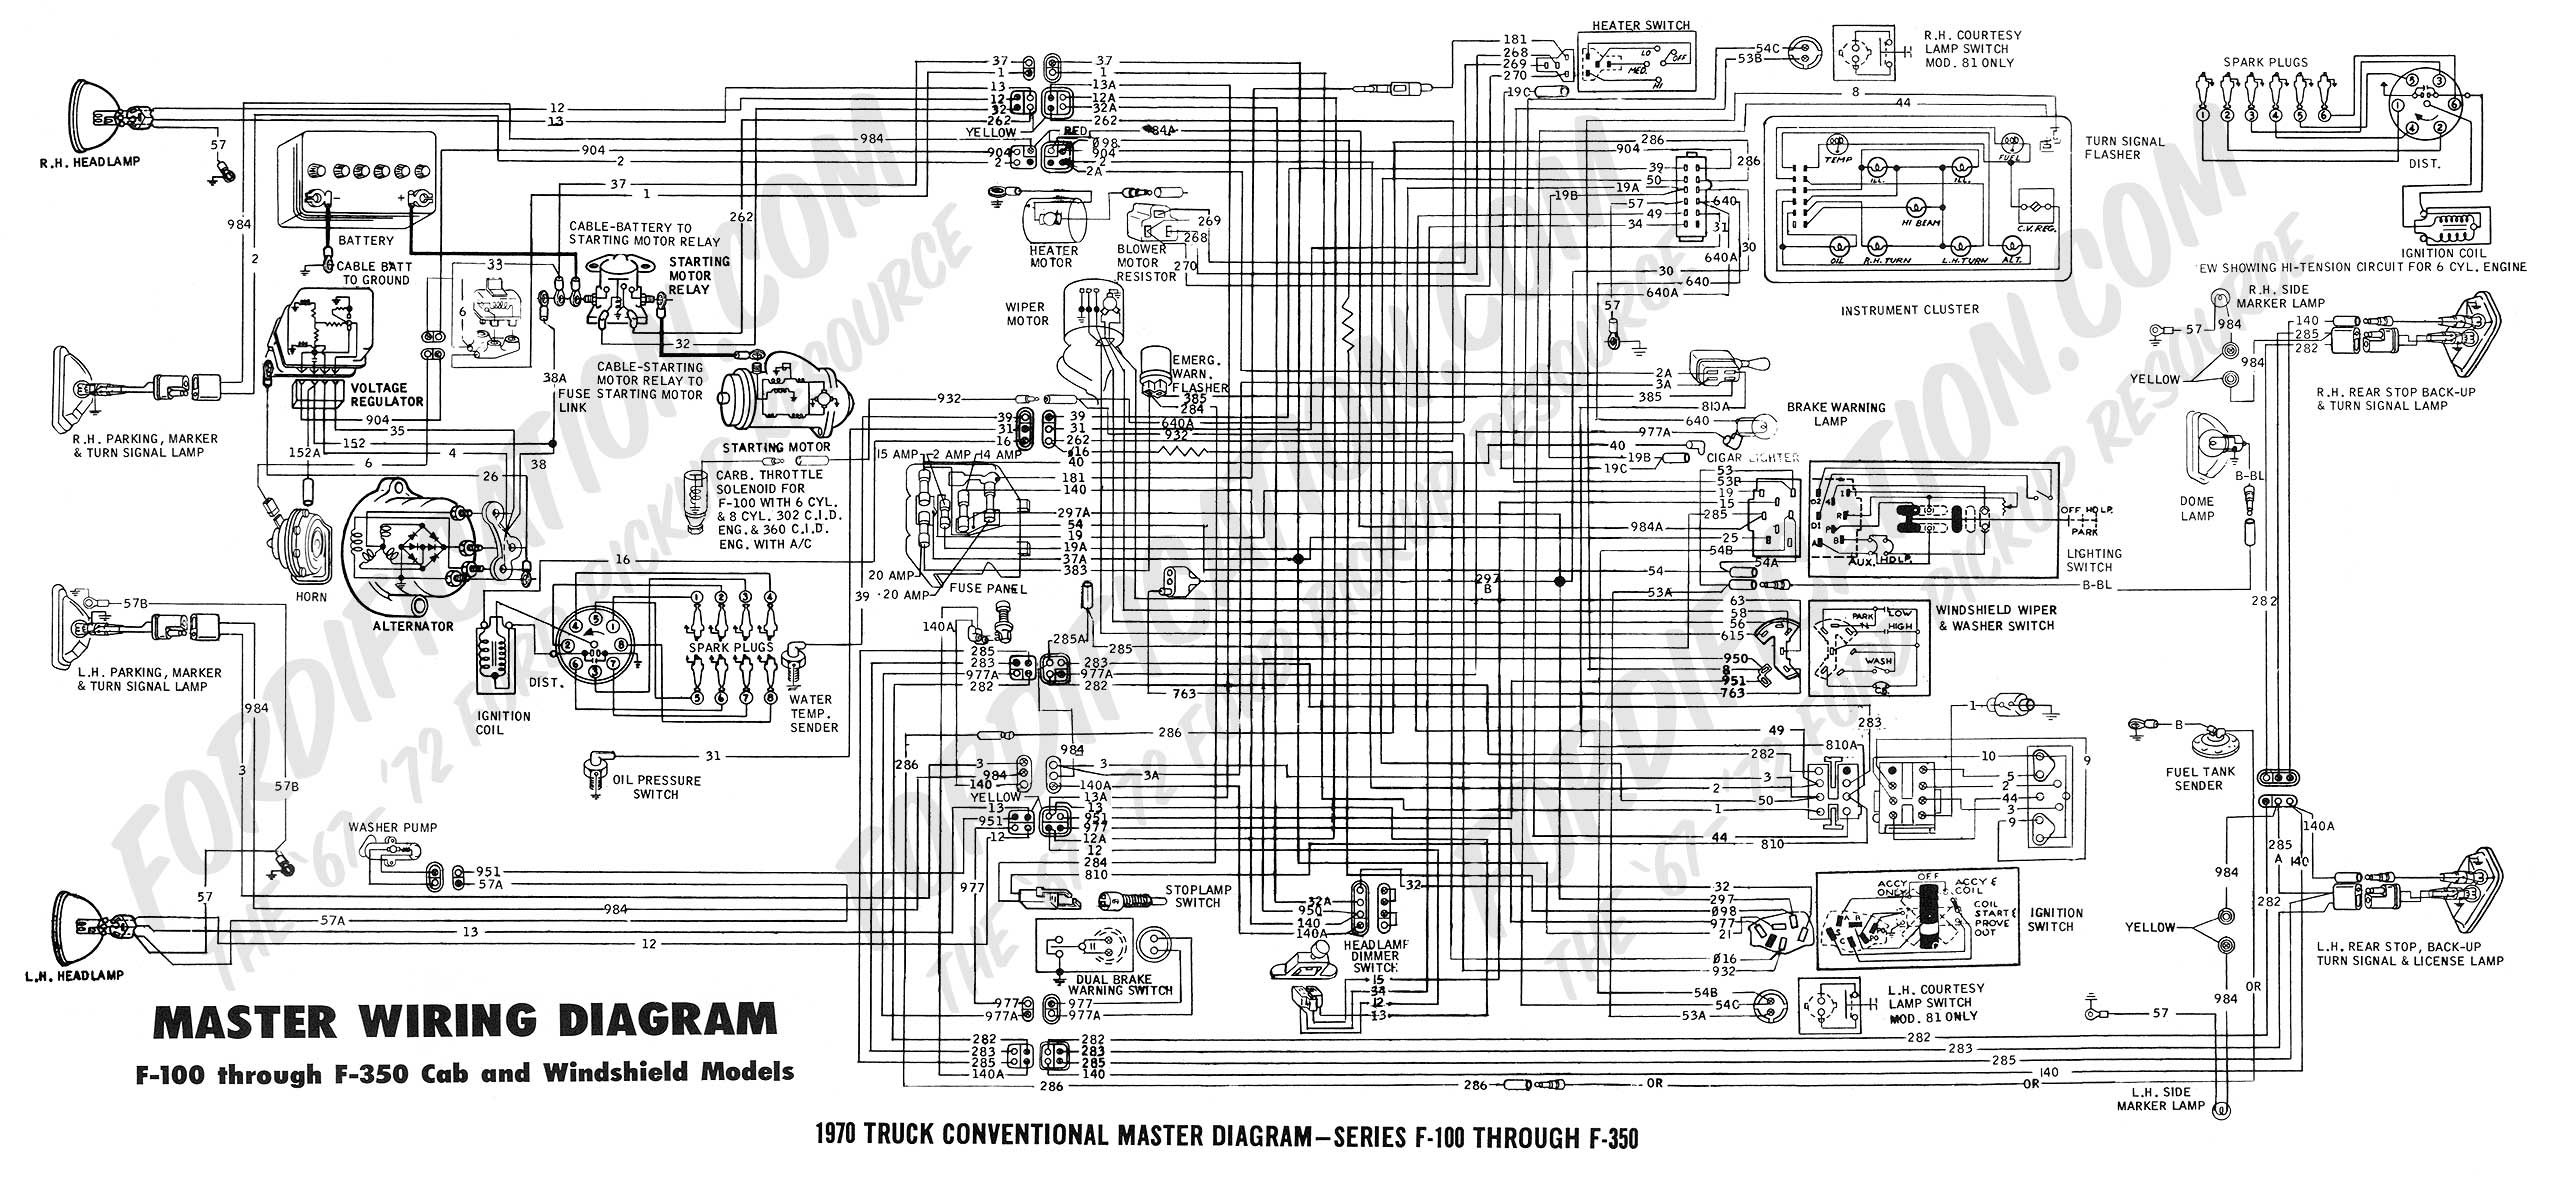 77 ford wiring diagram wiring diagrams show 1979 ford f150 wiring harness 77 ford truck wiring diagram wiring